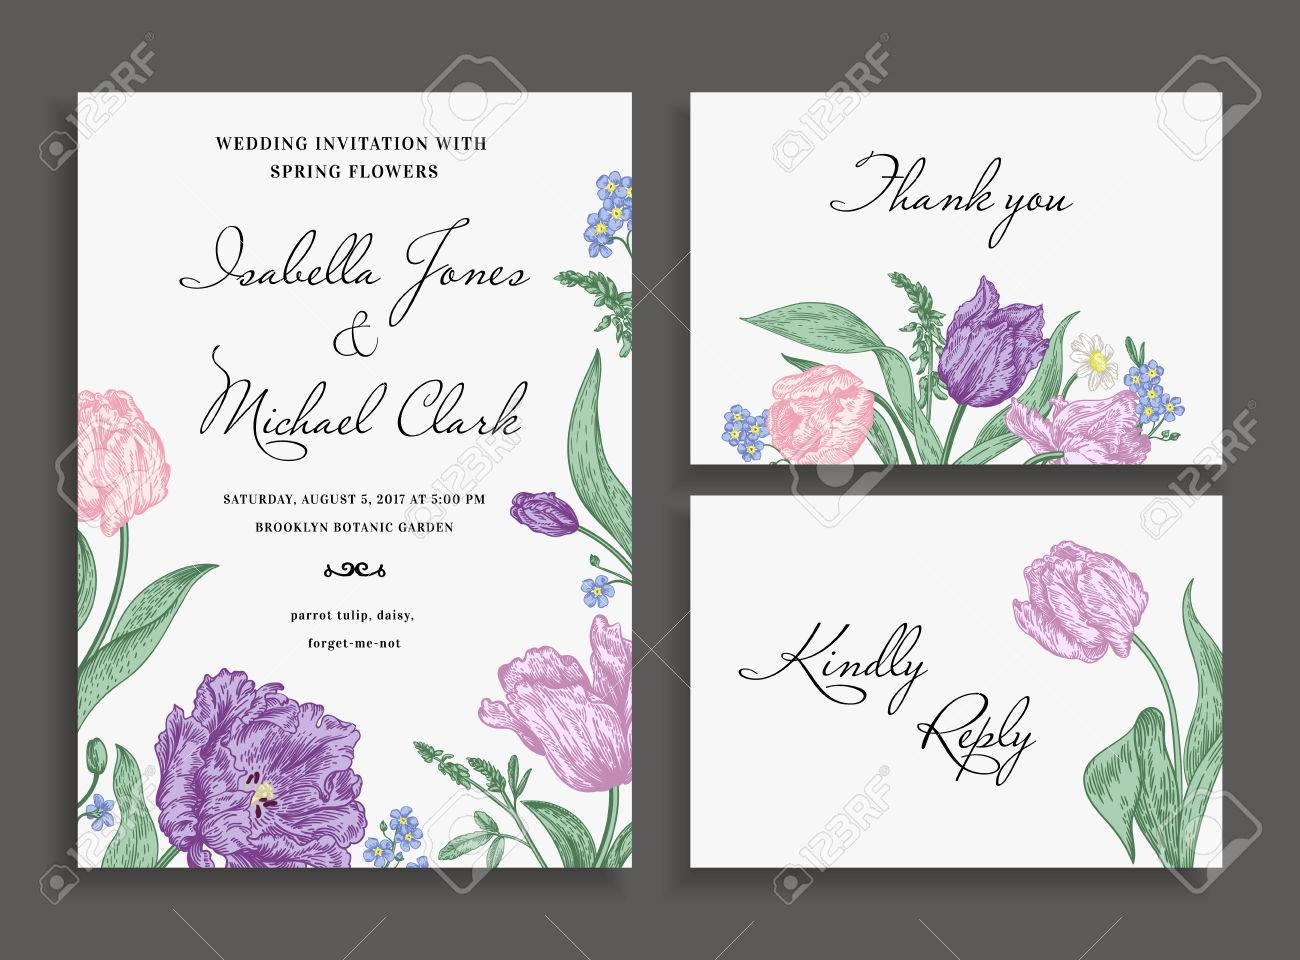 Vintage Wedding Set With Spring Flowers. Wedding Invitation ...